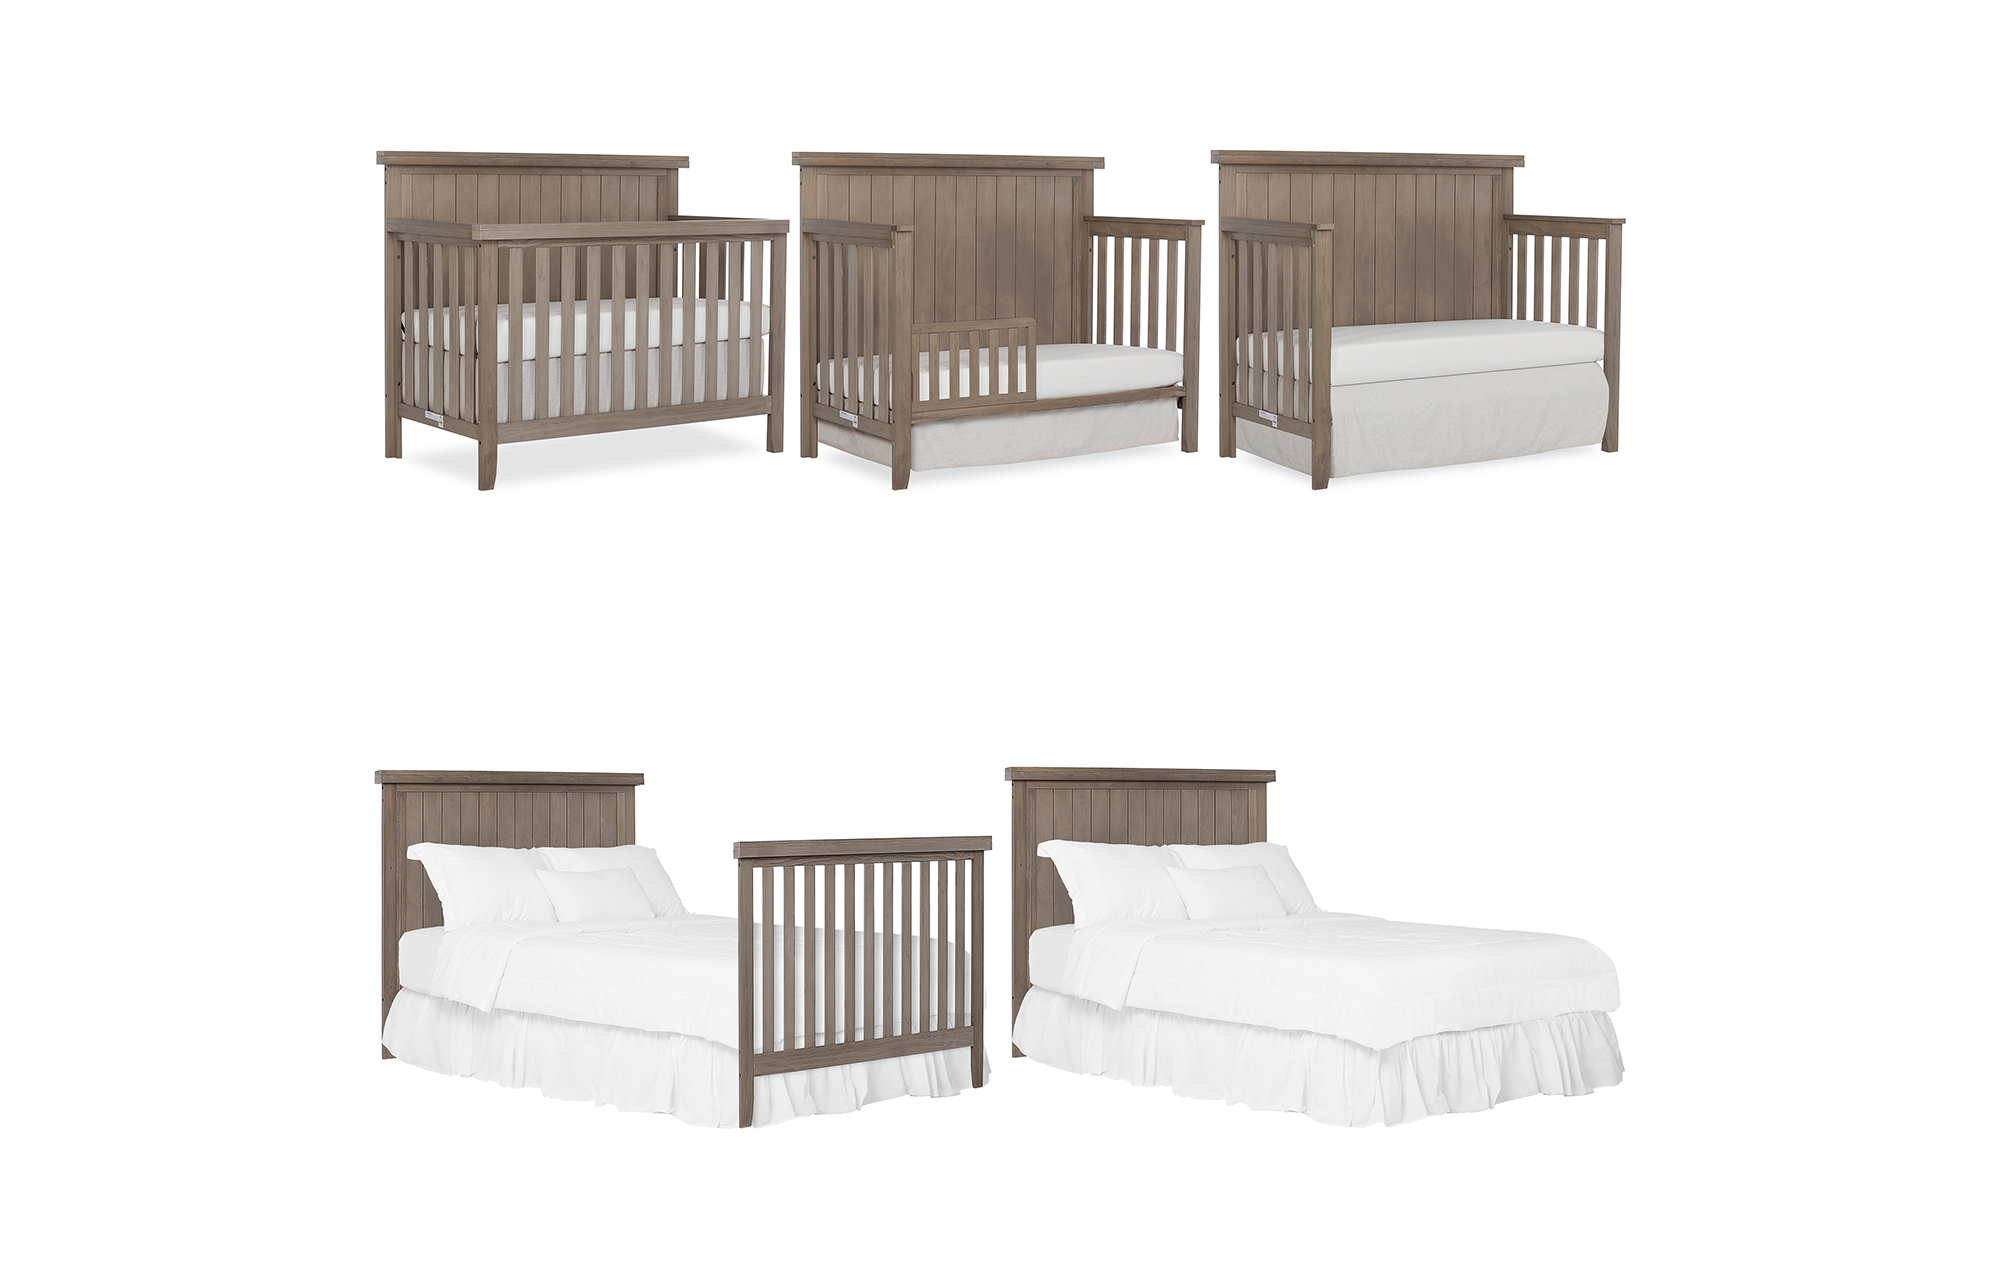 772BR-OAKGY Maple Crib Collage